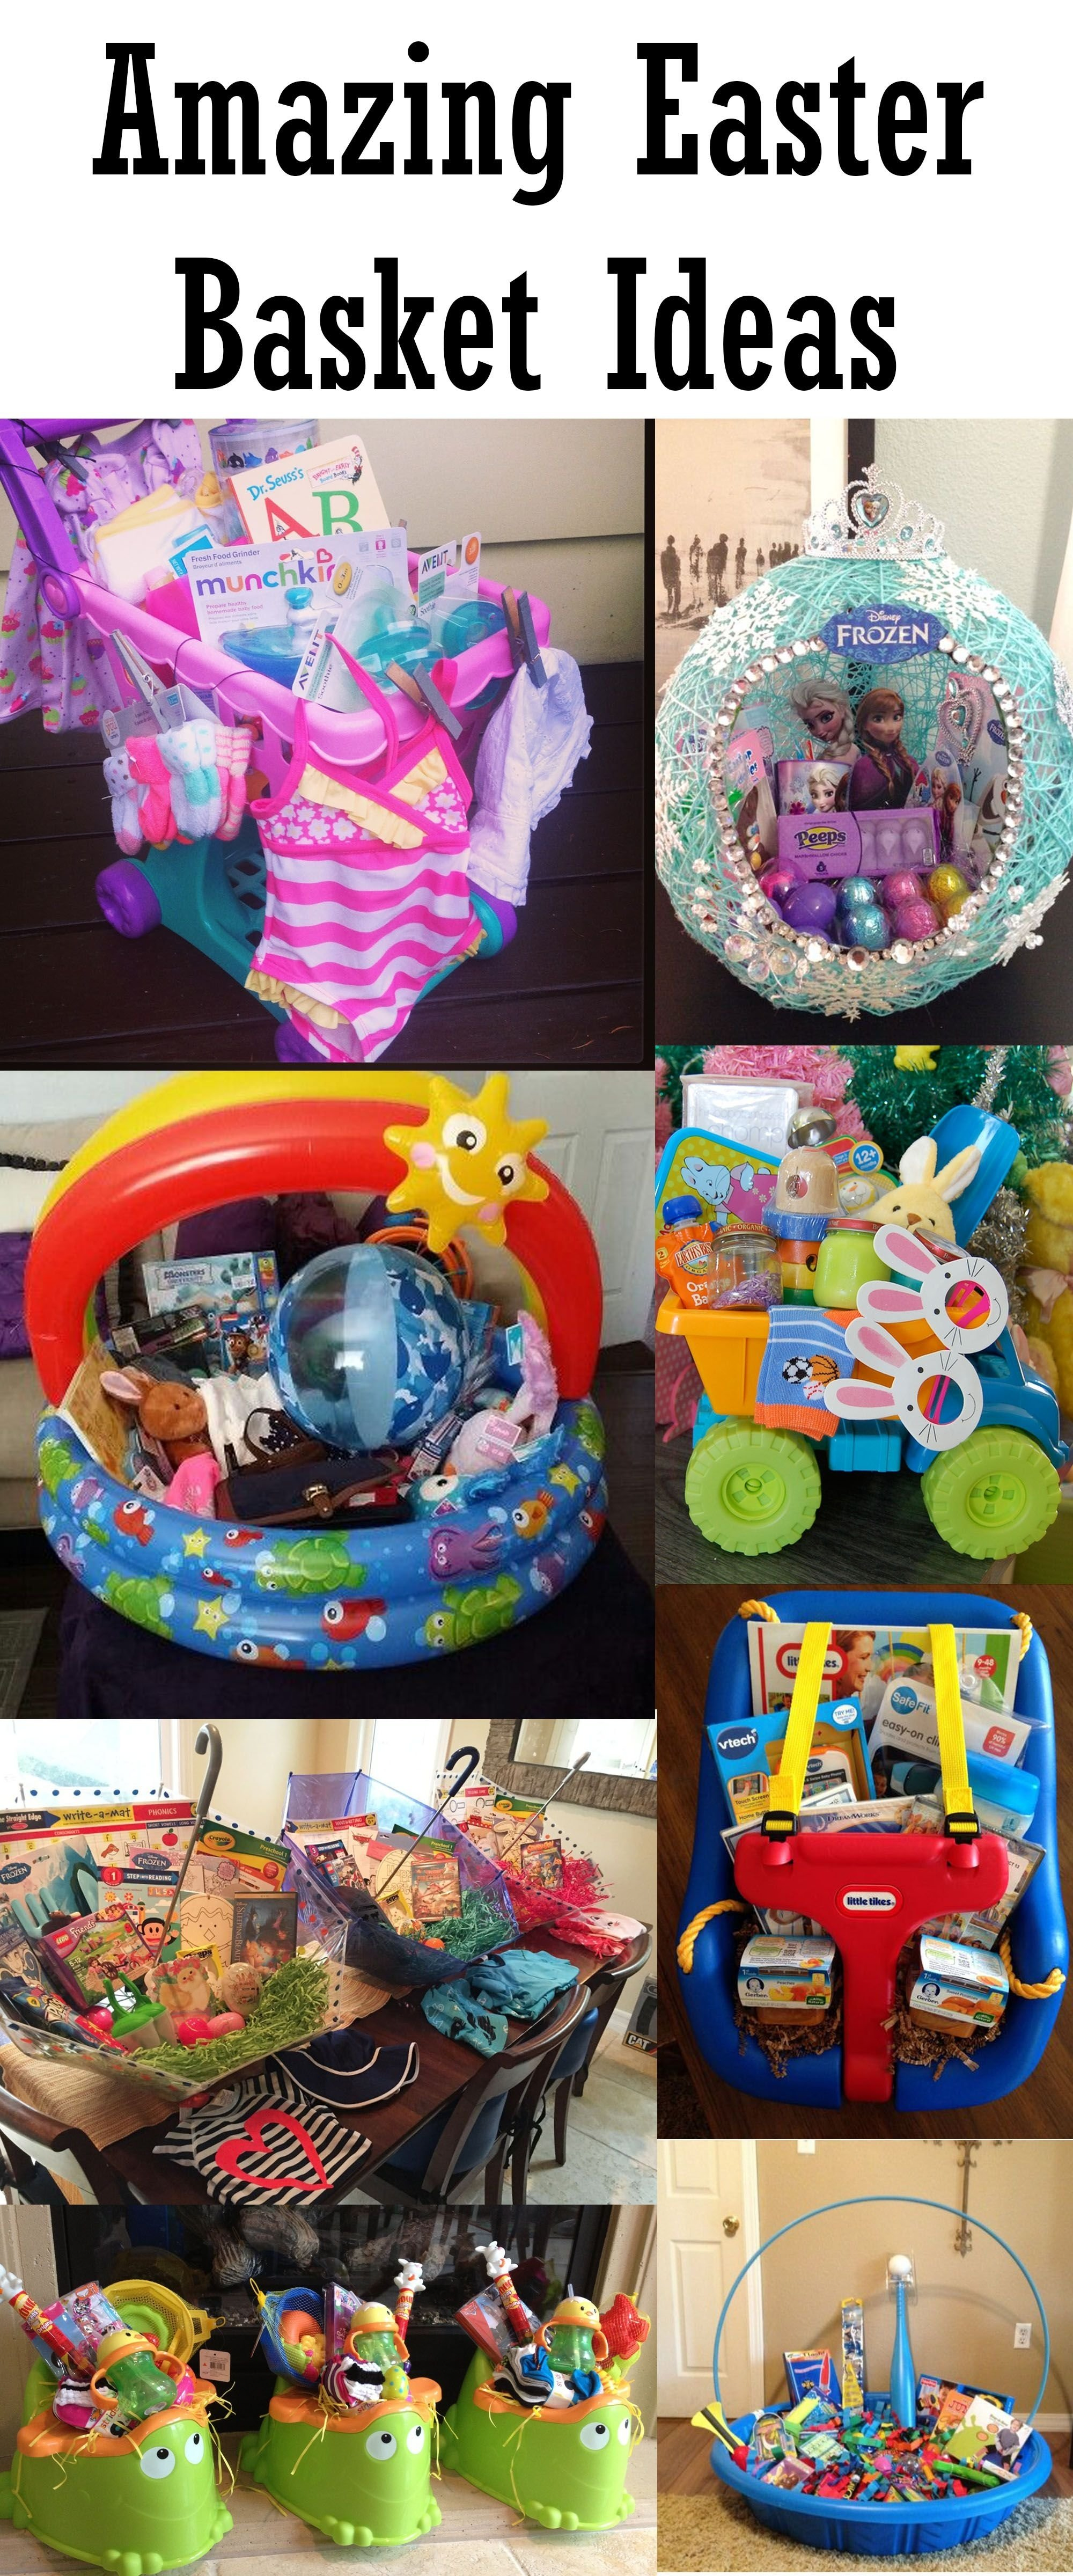 10 Famous Easter Basket Ideas For Toddlers amazing easter basket ideas basket ideas easter baskets and easter 9 2020